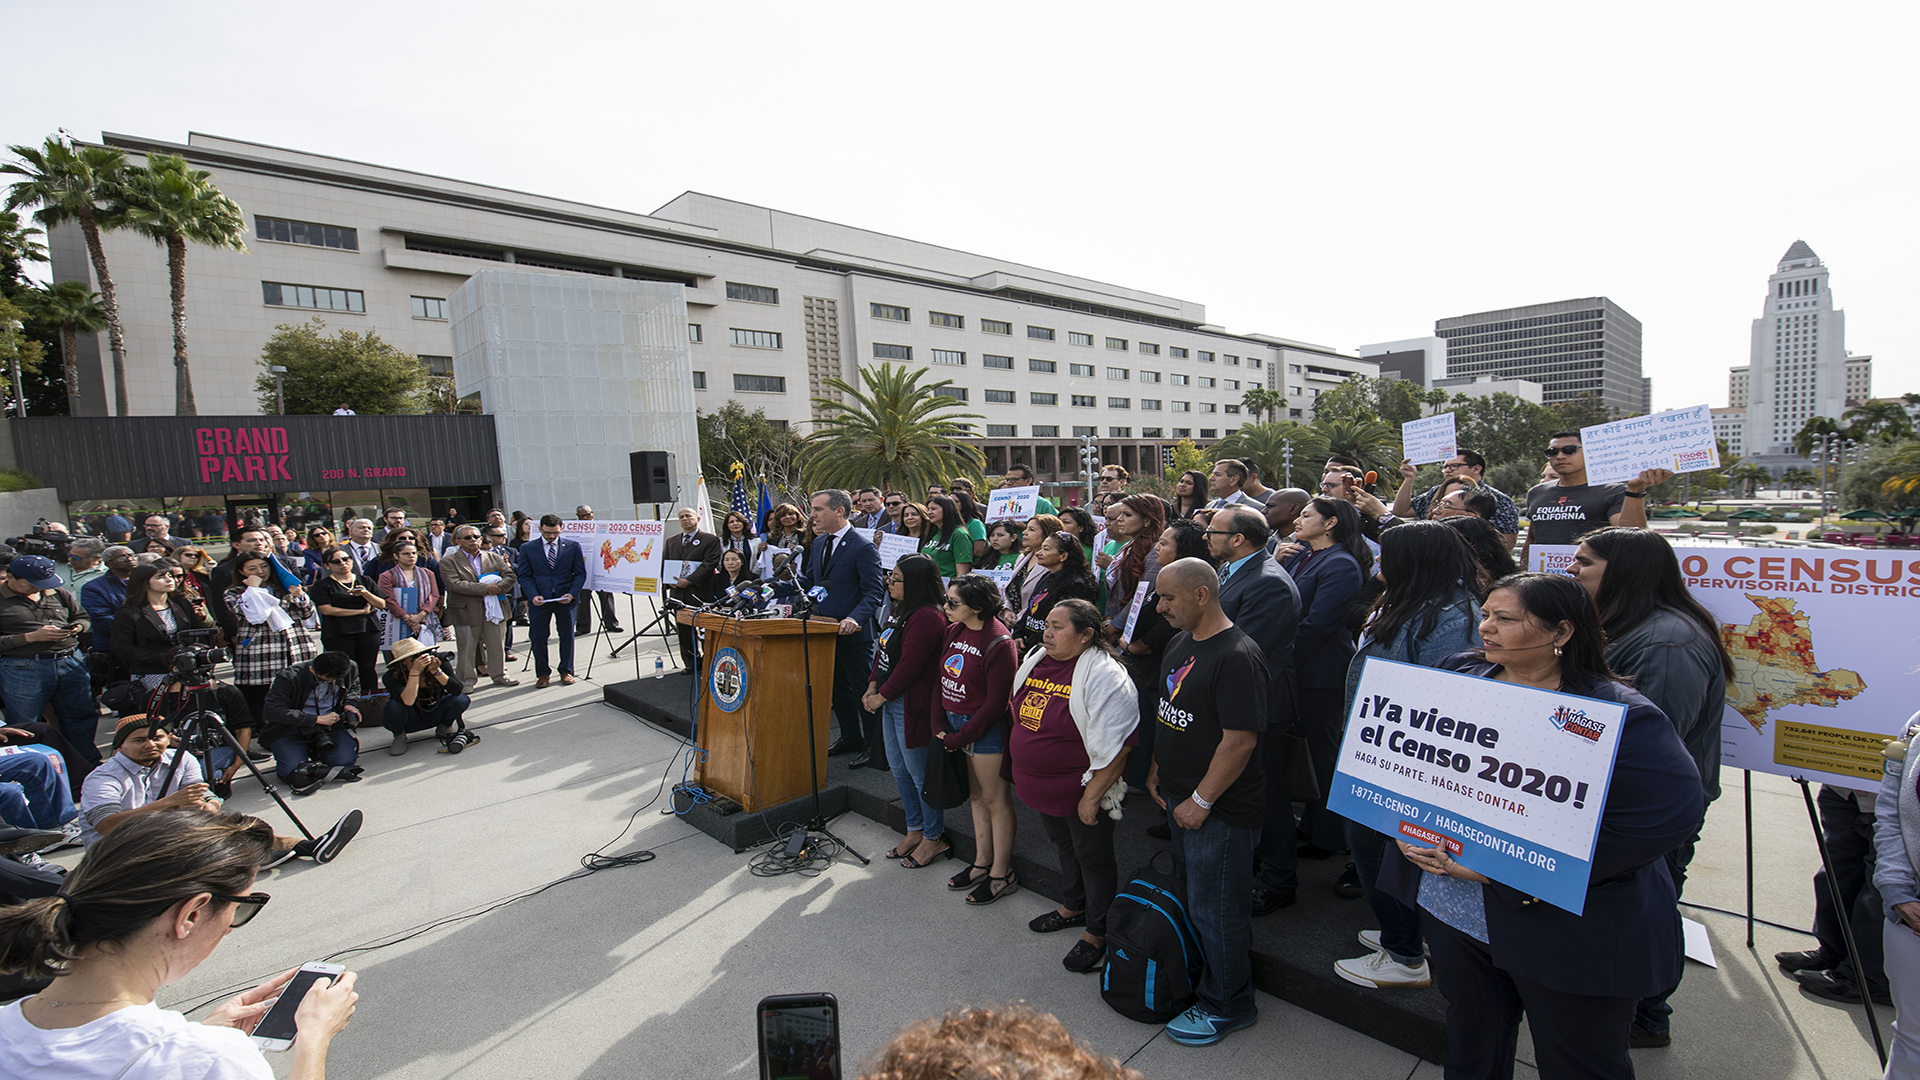 Mayor Garcetti with a crowd of people at Census news conference event.